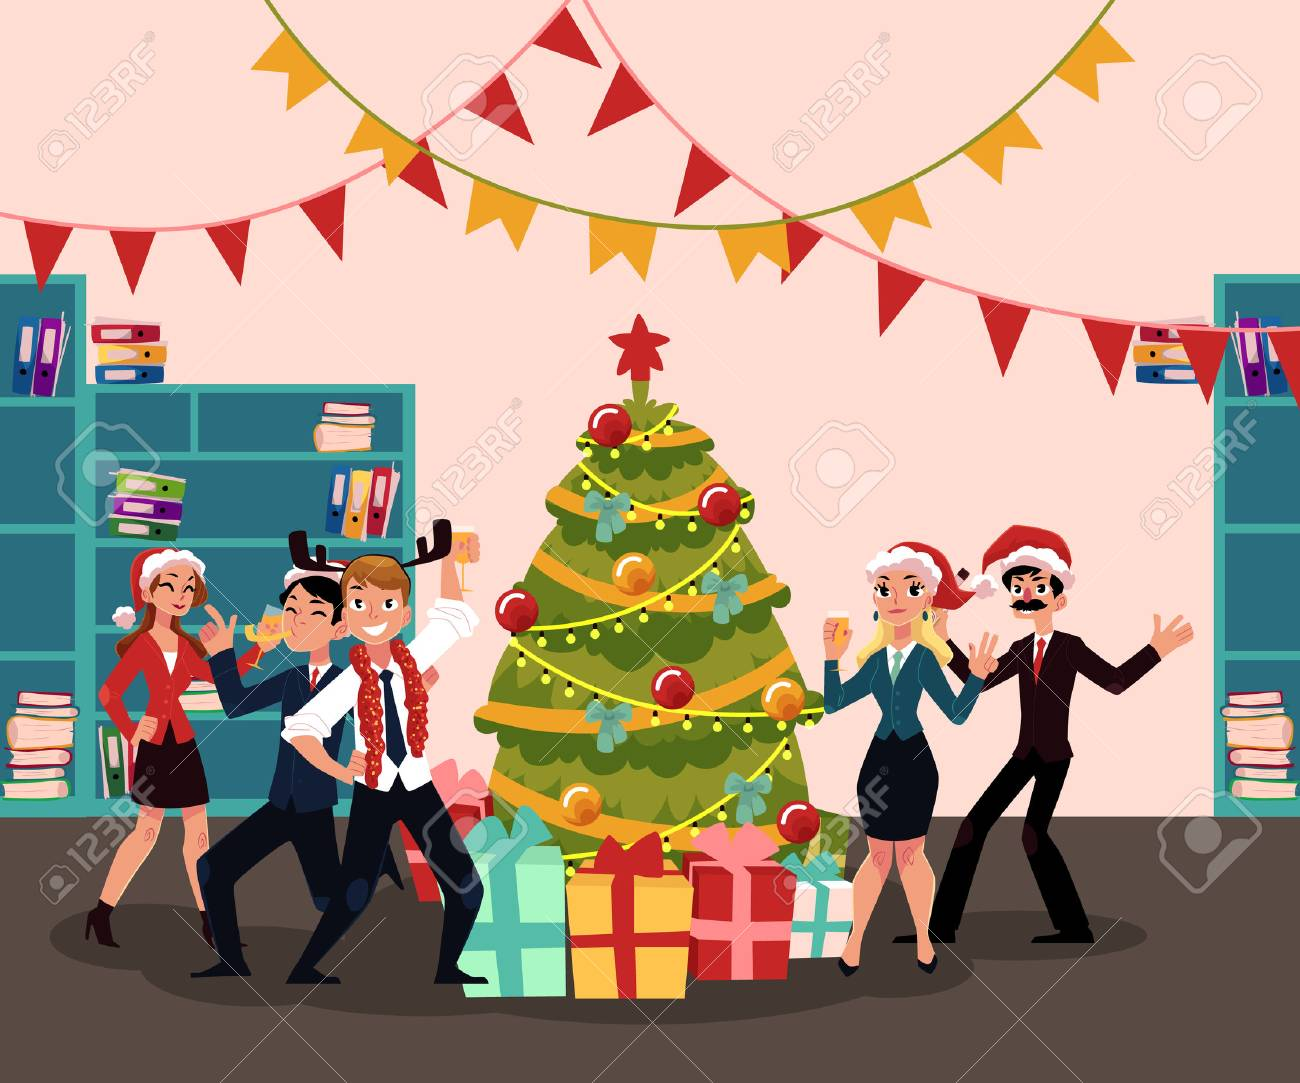 Christmas Party Images Cartoon.People In Santa Claus Hats Having Corporate Xmas Party Celebrating